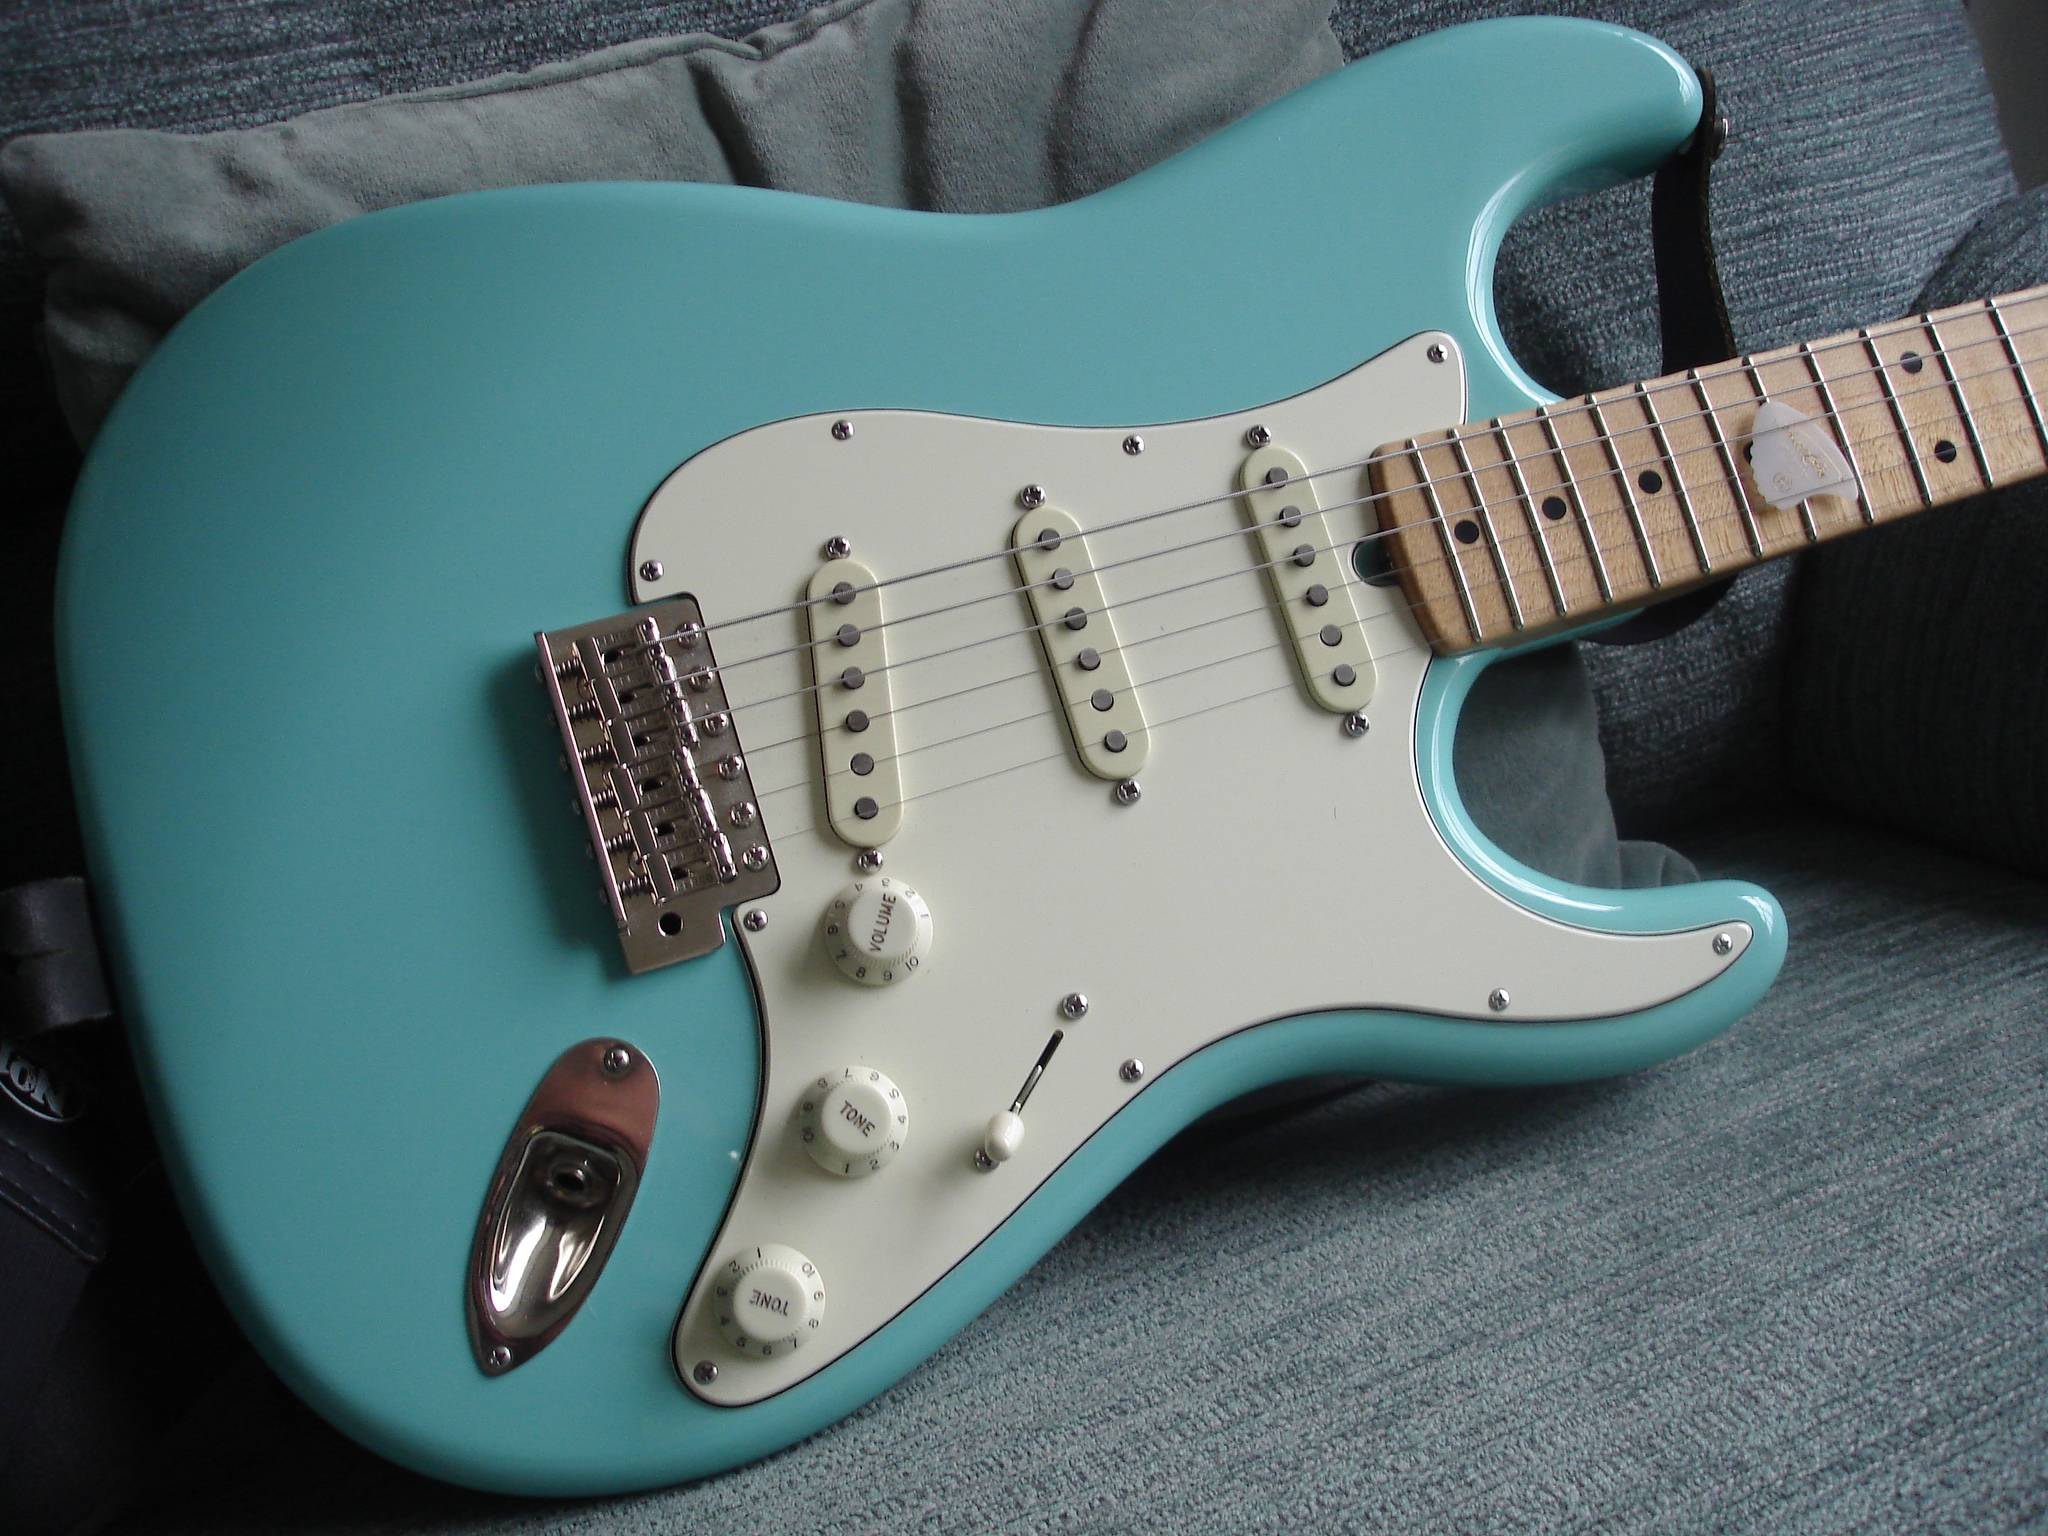 Seafoam Green Guitars Lets See Them The Gear Page Greasebucket Tone Control Telecaster Guitar Forum Pot Not Best Pic To Show Colour But I Feel Eye Hands On Its A Stunning With Even Blueish Hue Going As Well